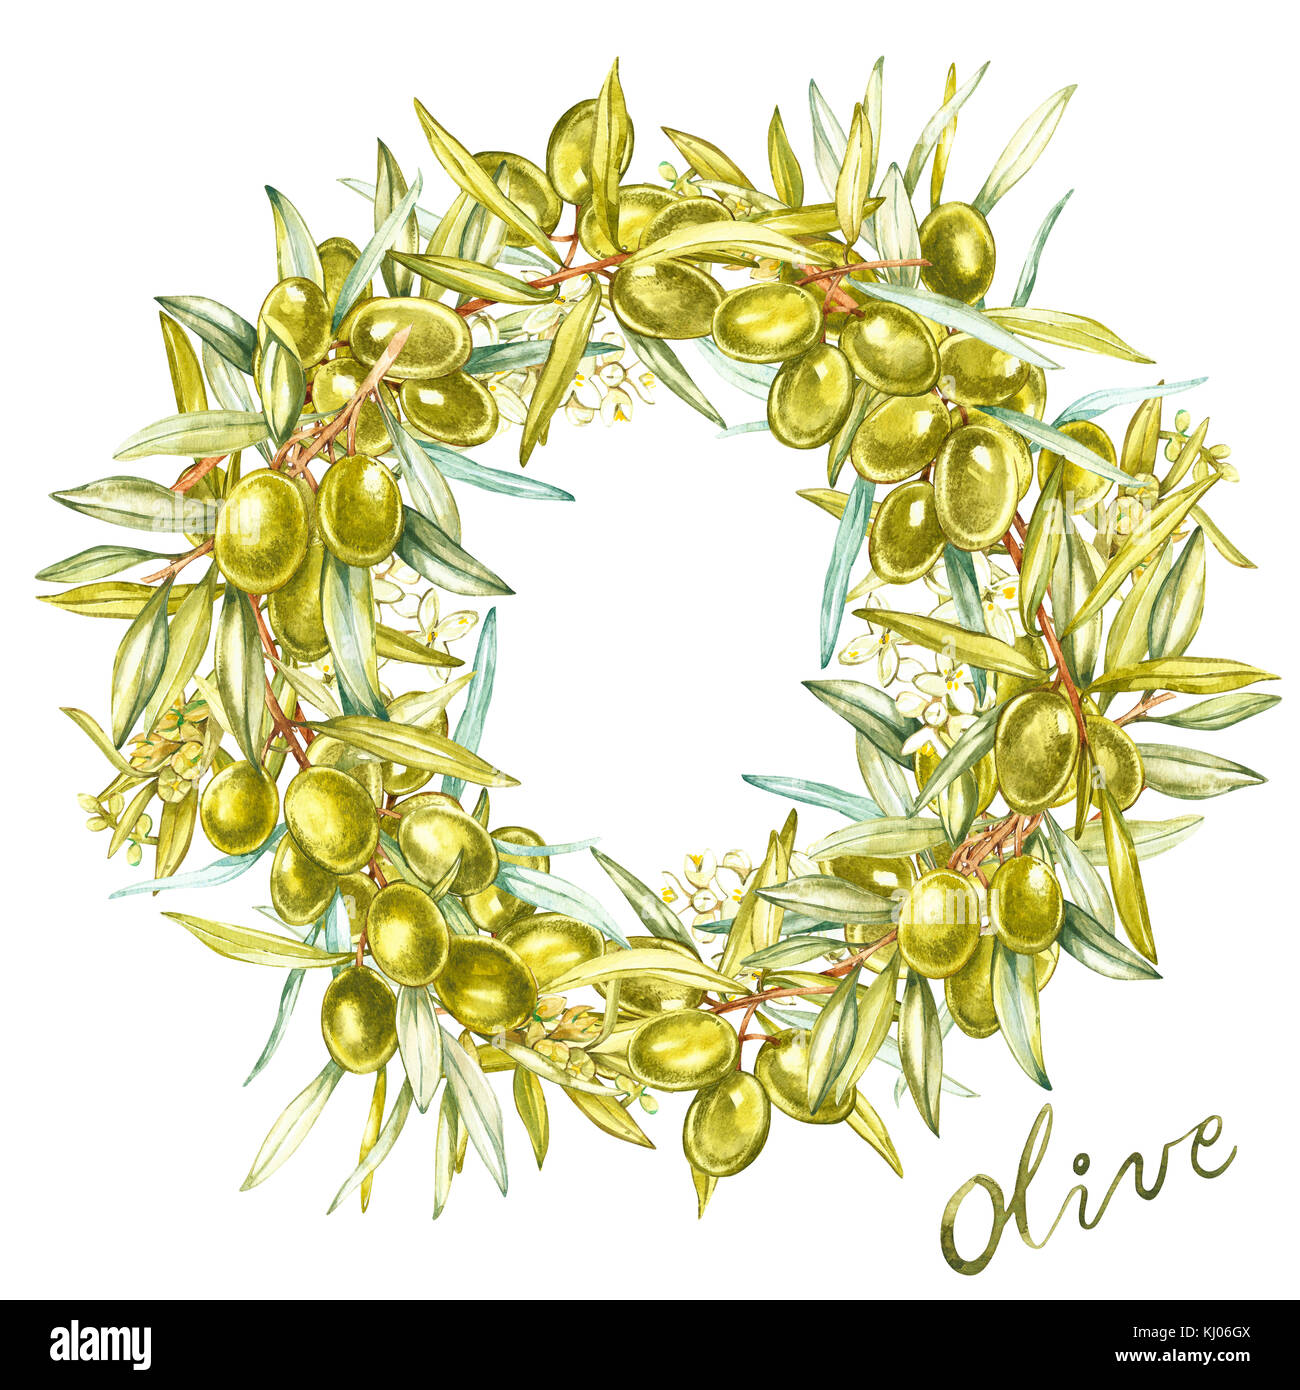 Watercolor colorful realistic wreath with ripe green olives on round white background. - Stock Image